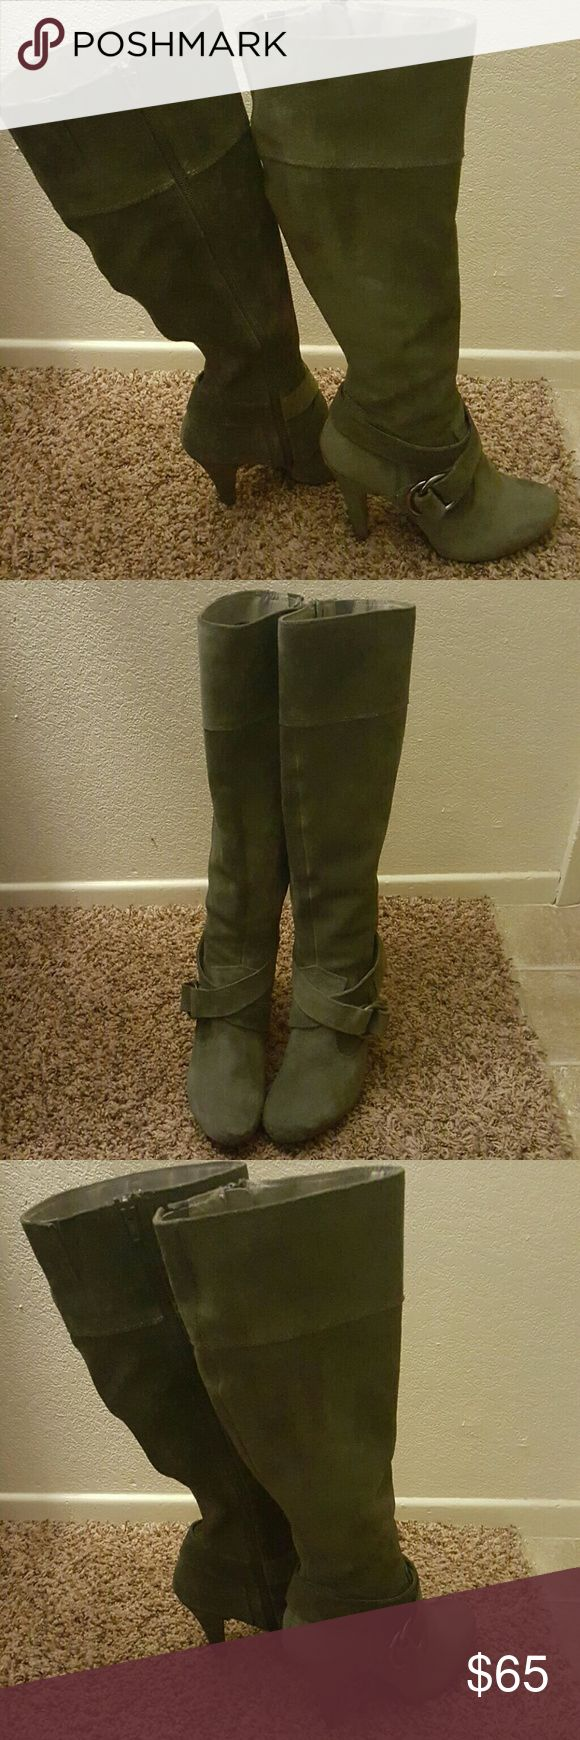 """Steve Madden Suede Ballott Boots SALE TODAY! Steve Madden Ballot Grey Suede Leather Side Zip Knee-High Boots Heels Women's Size 9. These boots are in great pre-owned condition! They have been gently worn and very light wear from use. Still look Great! Approximately 19"""" from top to bottom. 3""""heel and up Circumference 14.5""""  Offers Accepted! Steve Madden Shoes Heeled Boots"""